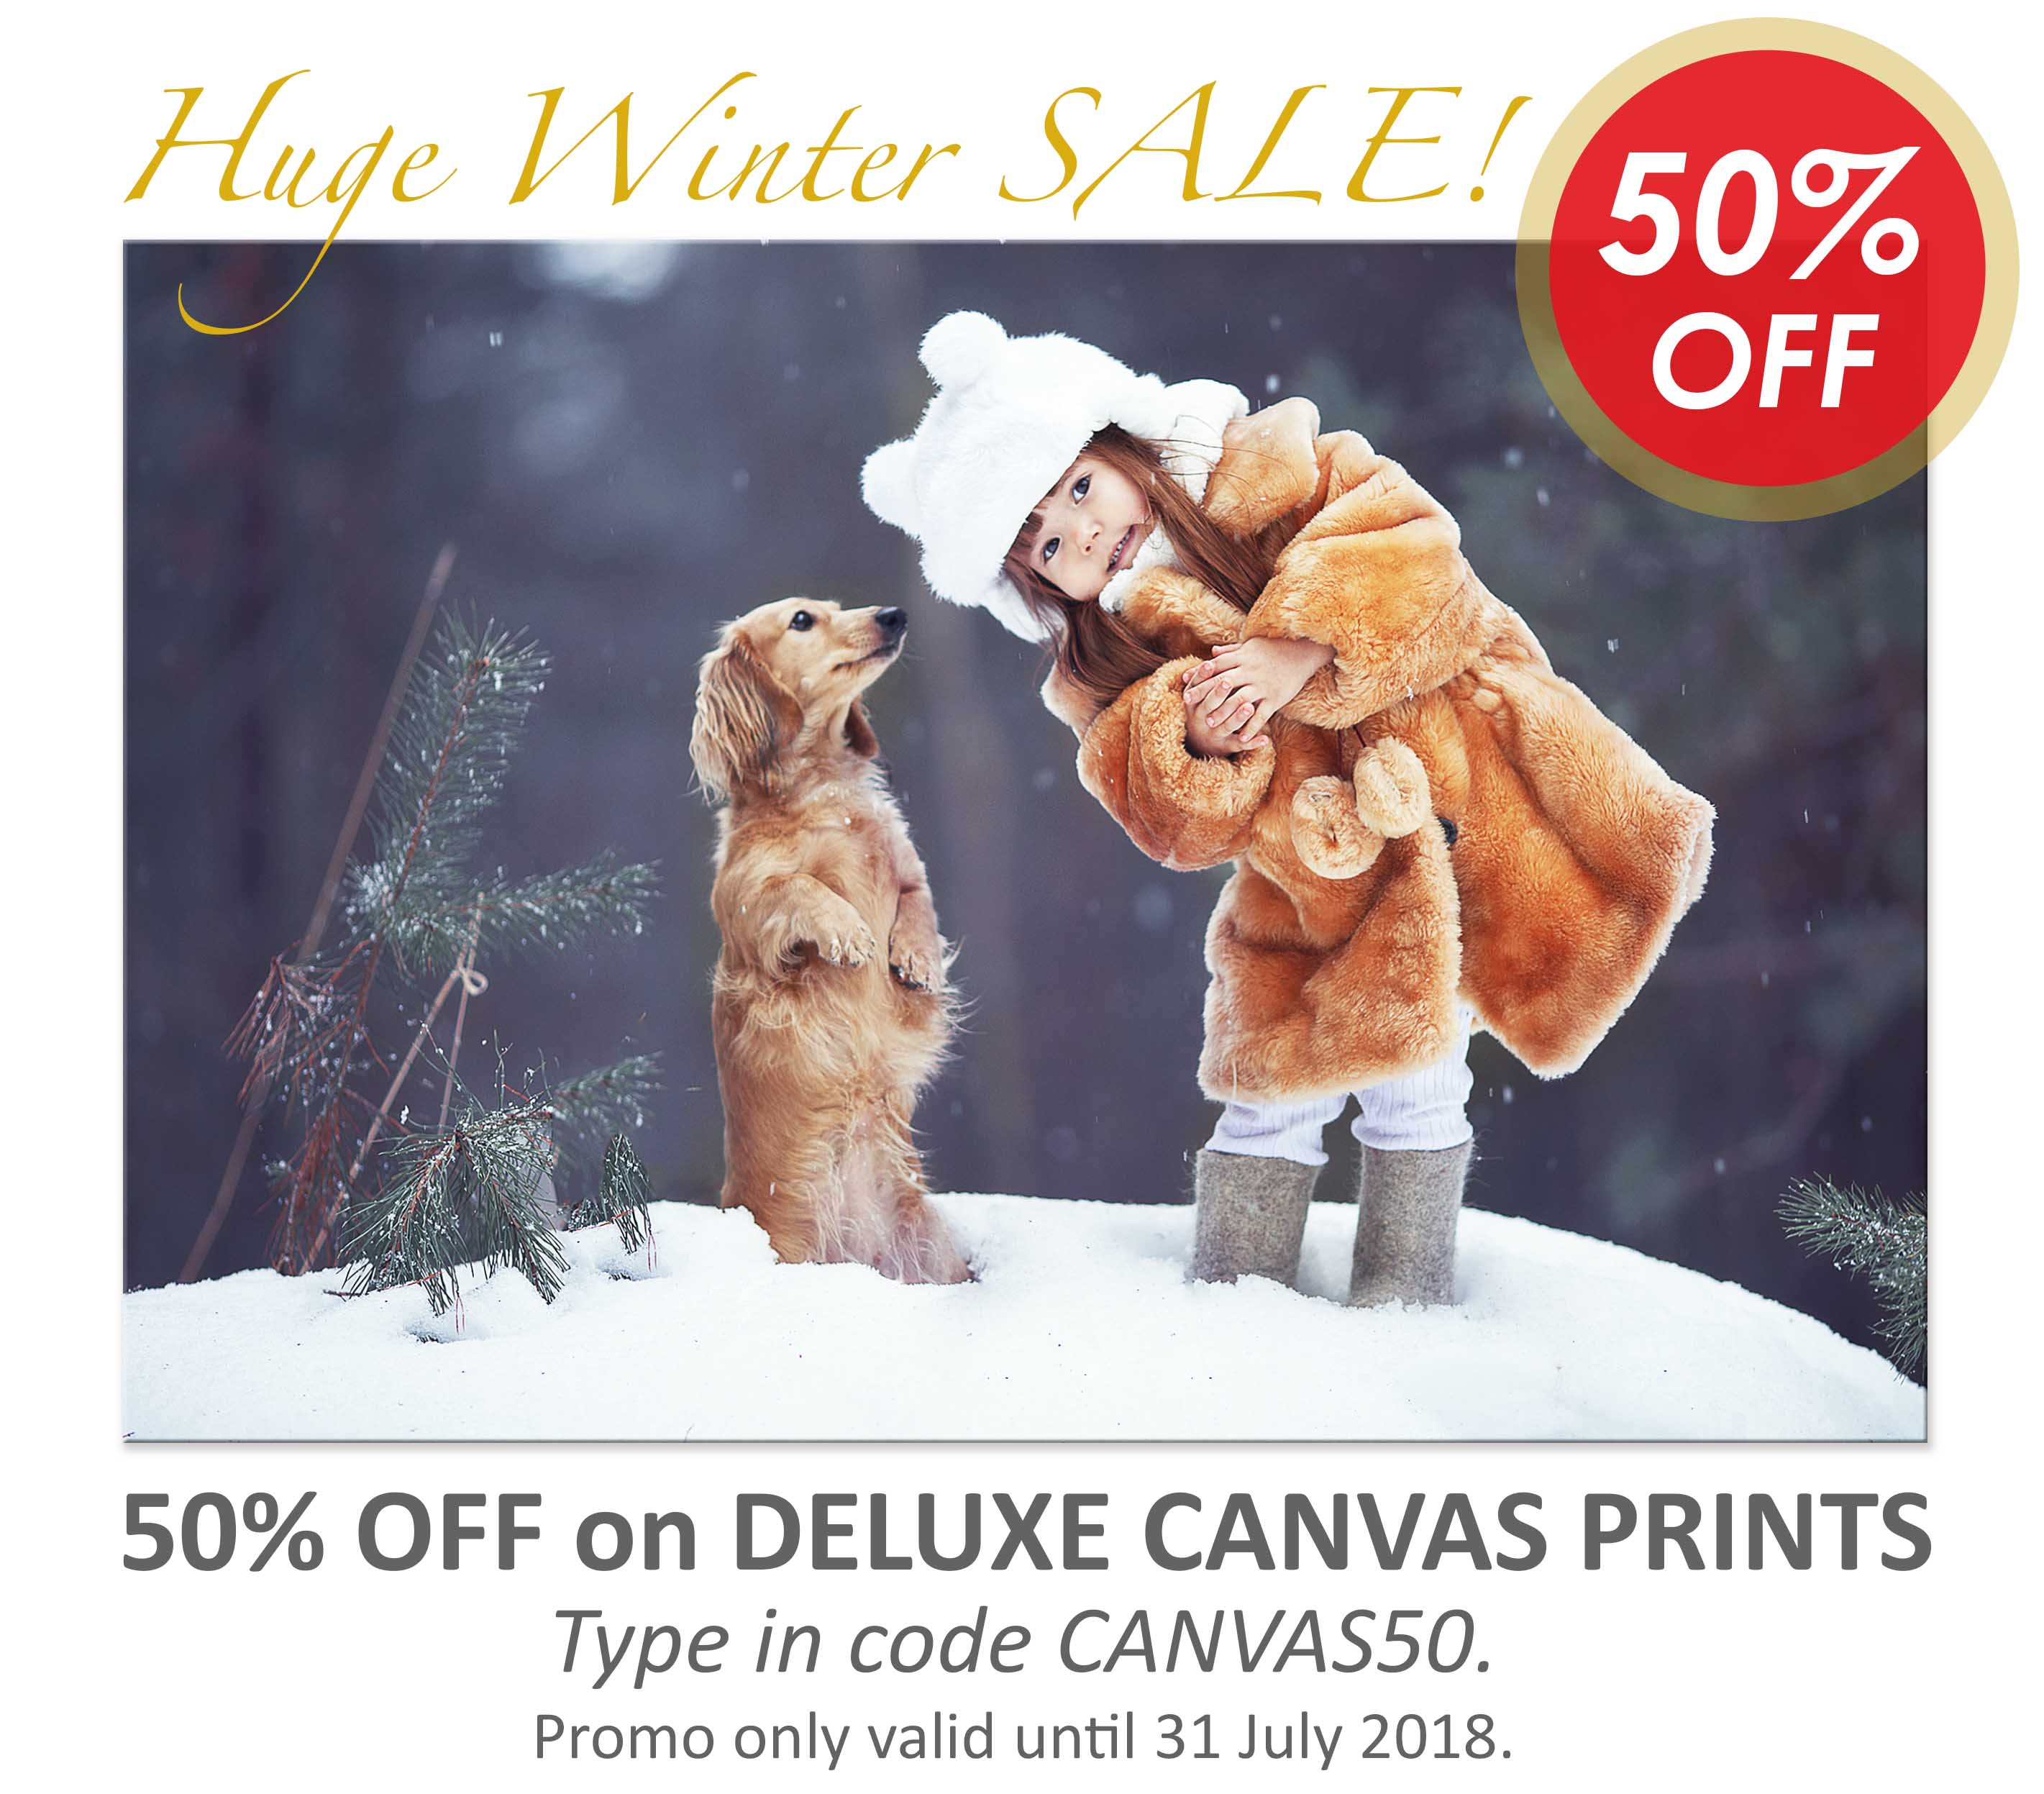 Deluxe Art Canvas Printing Winter Sale 50 OFF